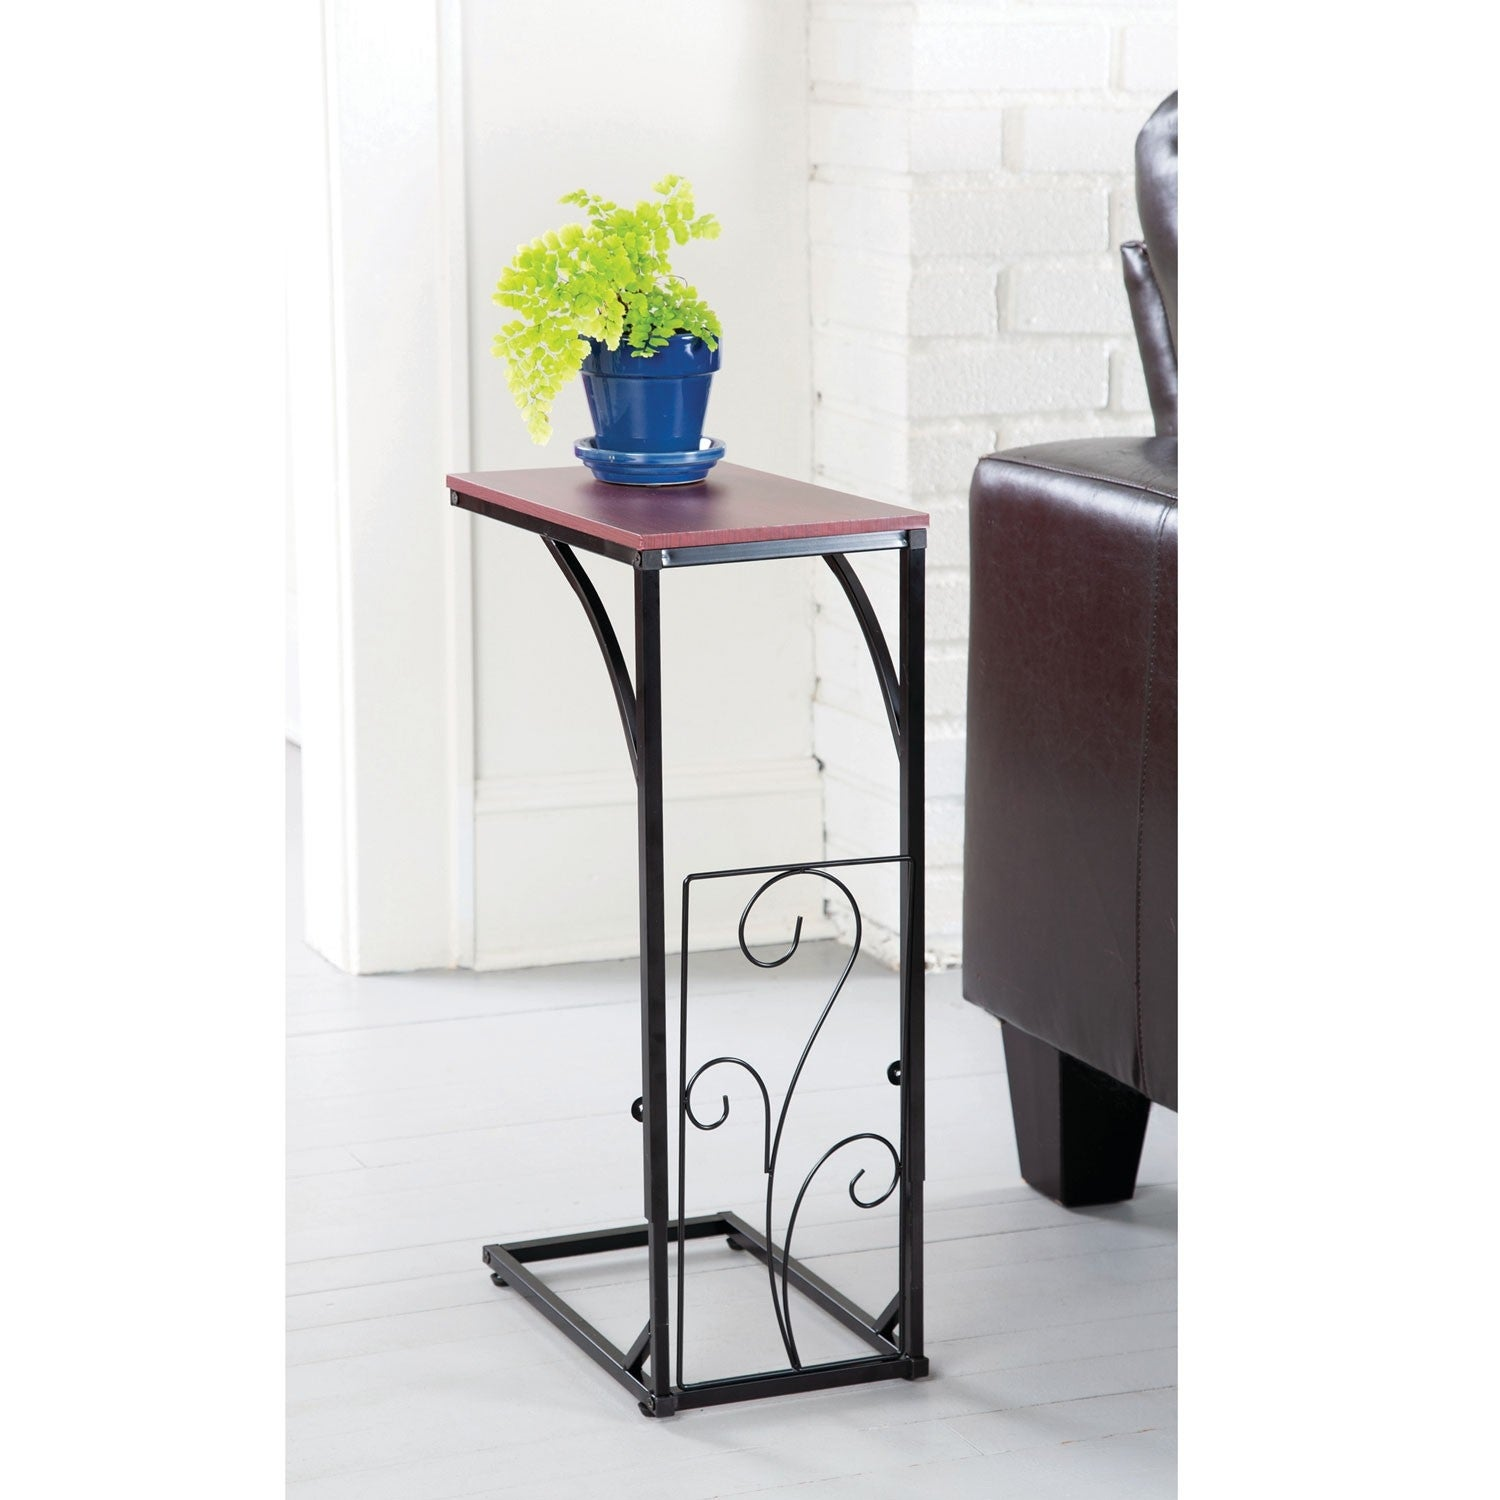 Adjustable Height Sofa Side End Table Brown Wood Top Black Metal Scroll Design C Shaped Tv Tray For Couch Chair Recliner On Sale Overstock 28712635